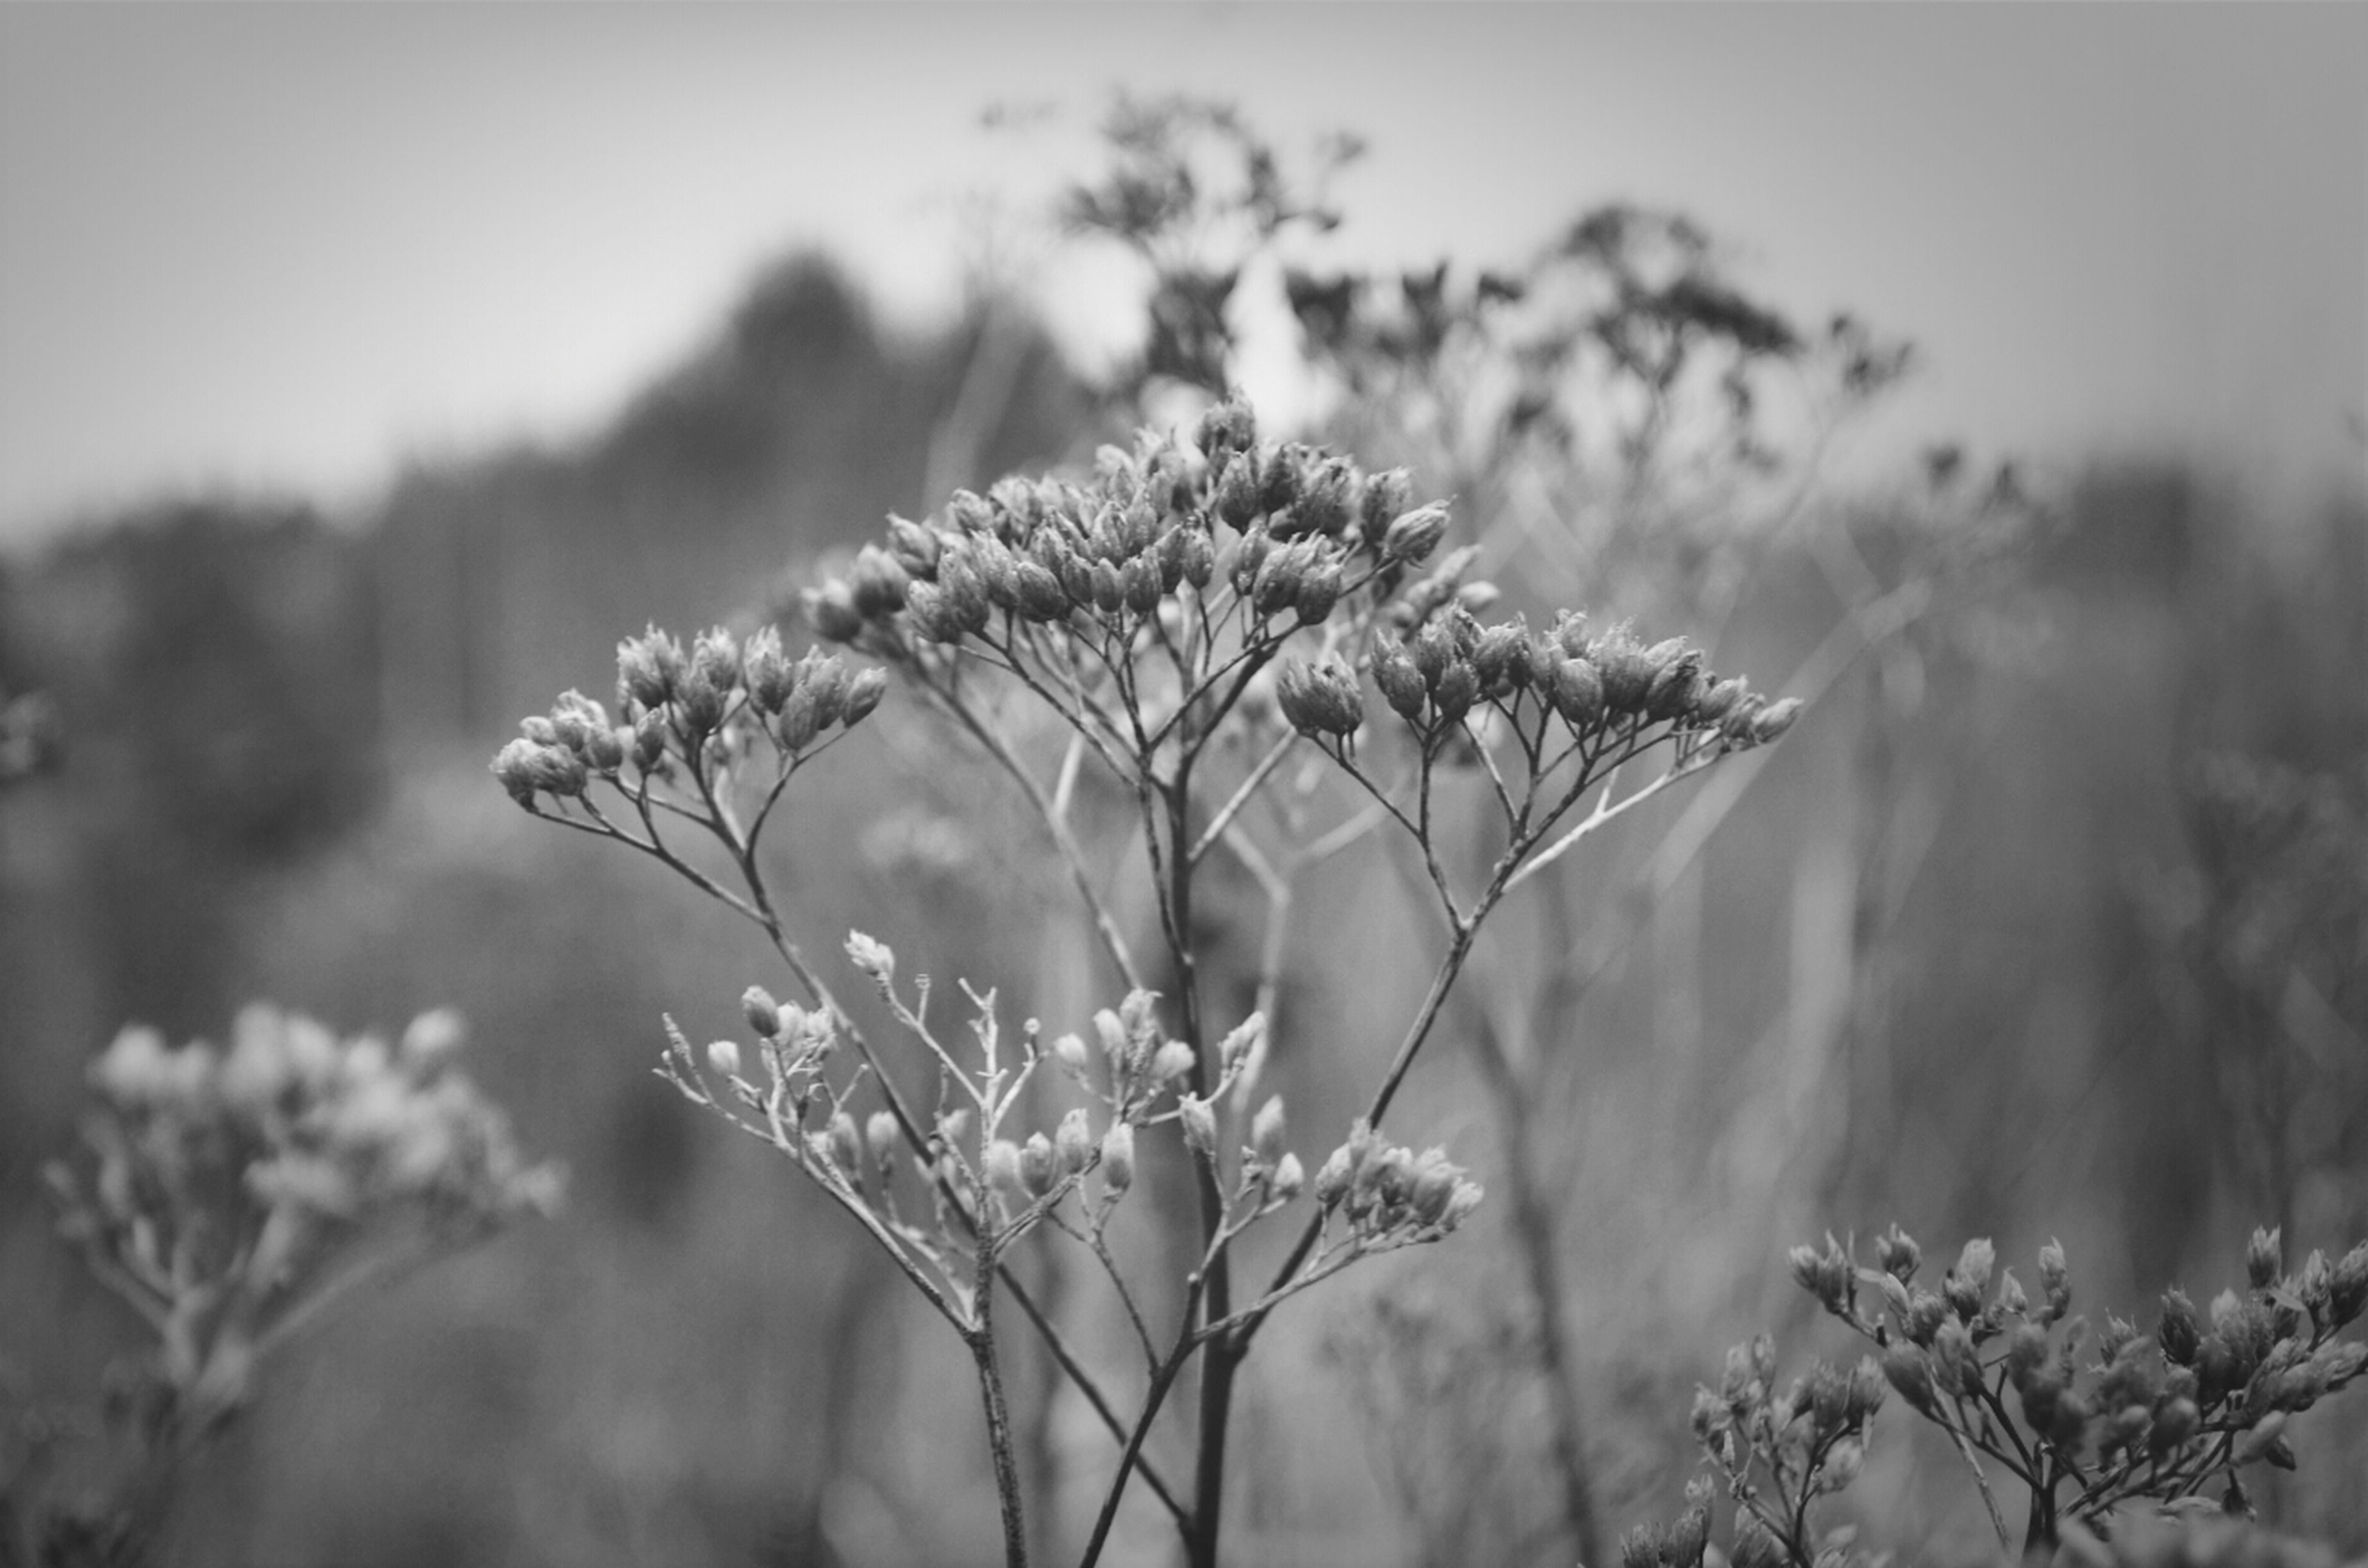 growth, focus on foreground, flower, plant, close-up, stem, nature, fragility, freshness, beauty in nature, selective focus, field, tranquility, growing, clear sky, outdoors, sky, day, botany, bud